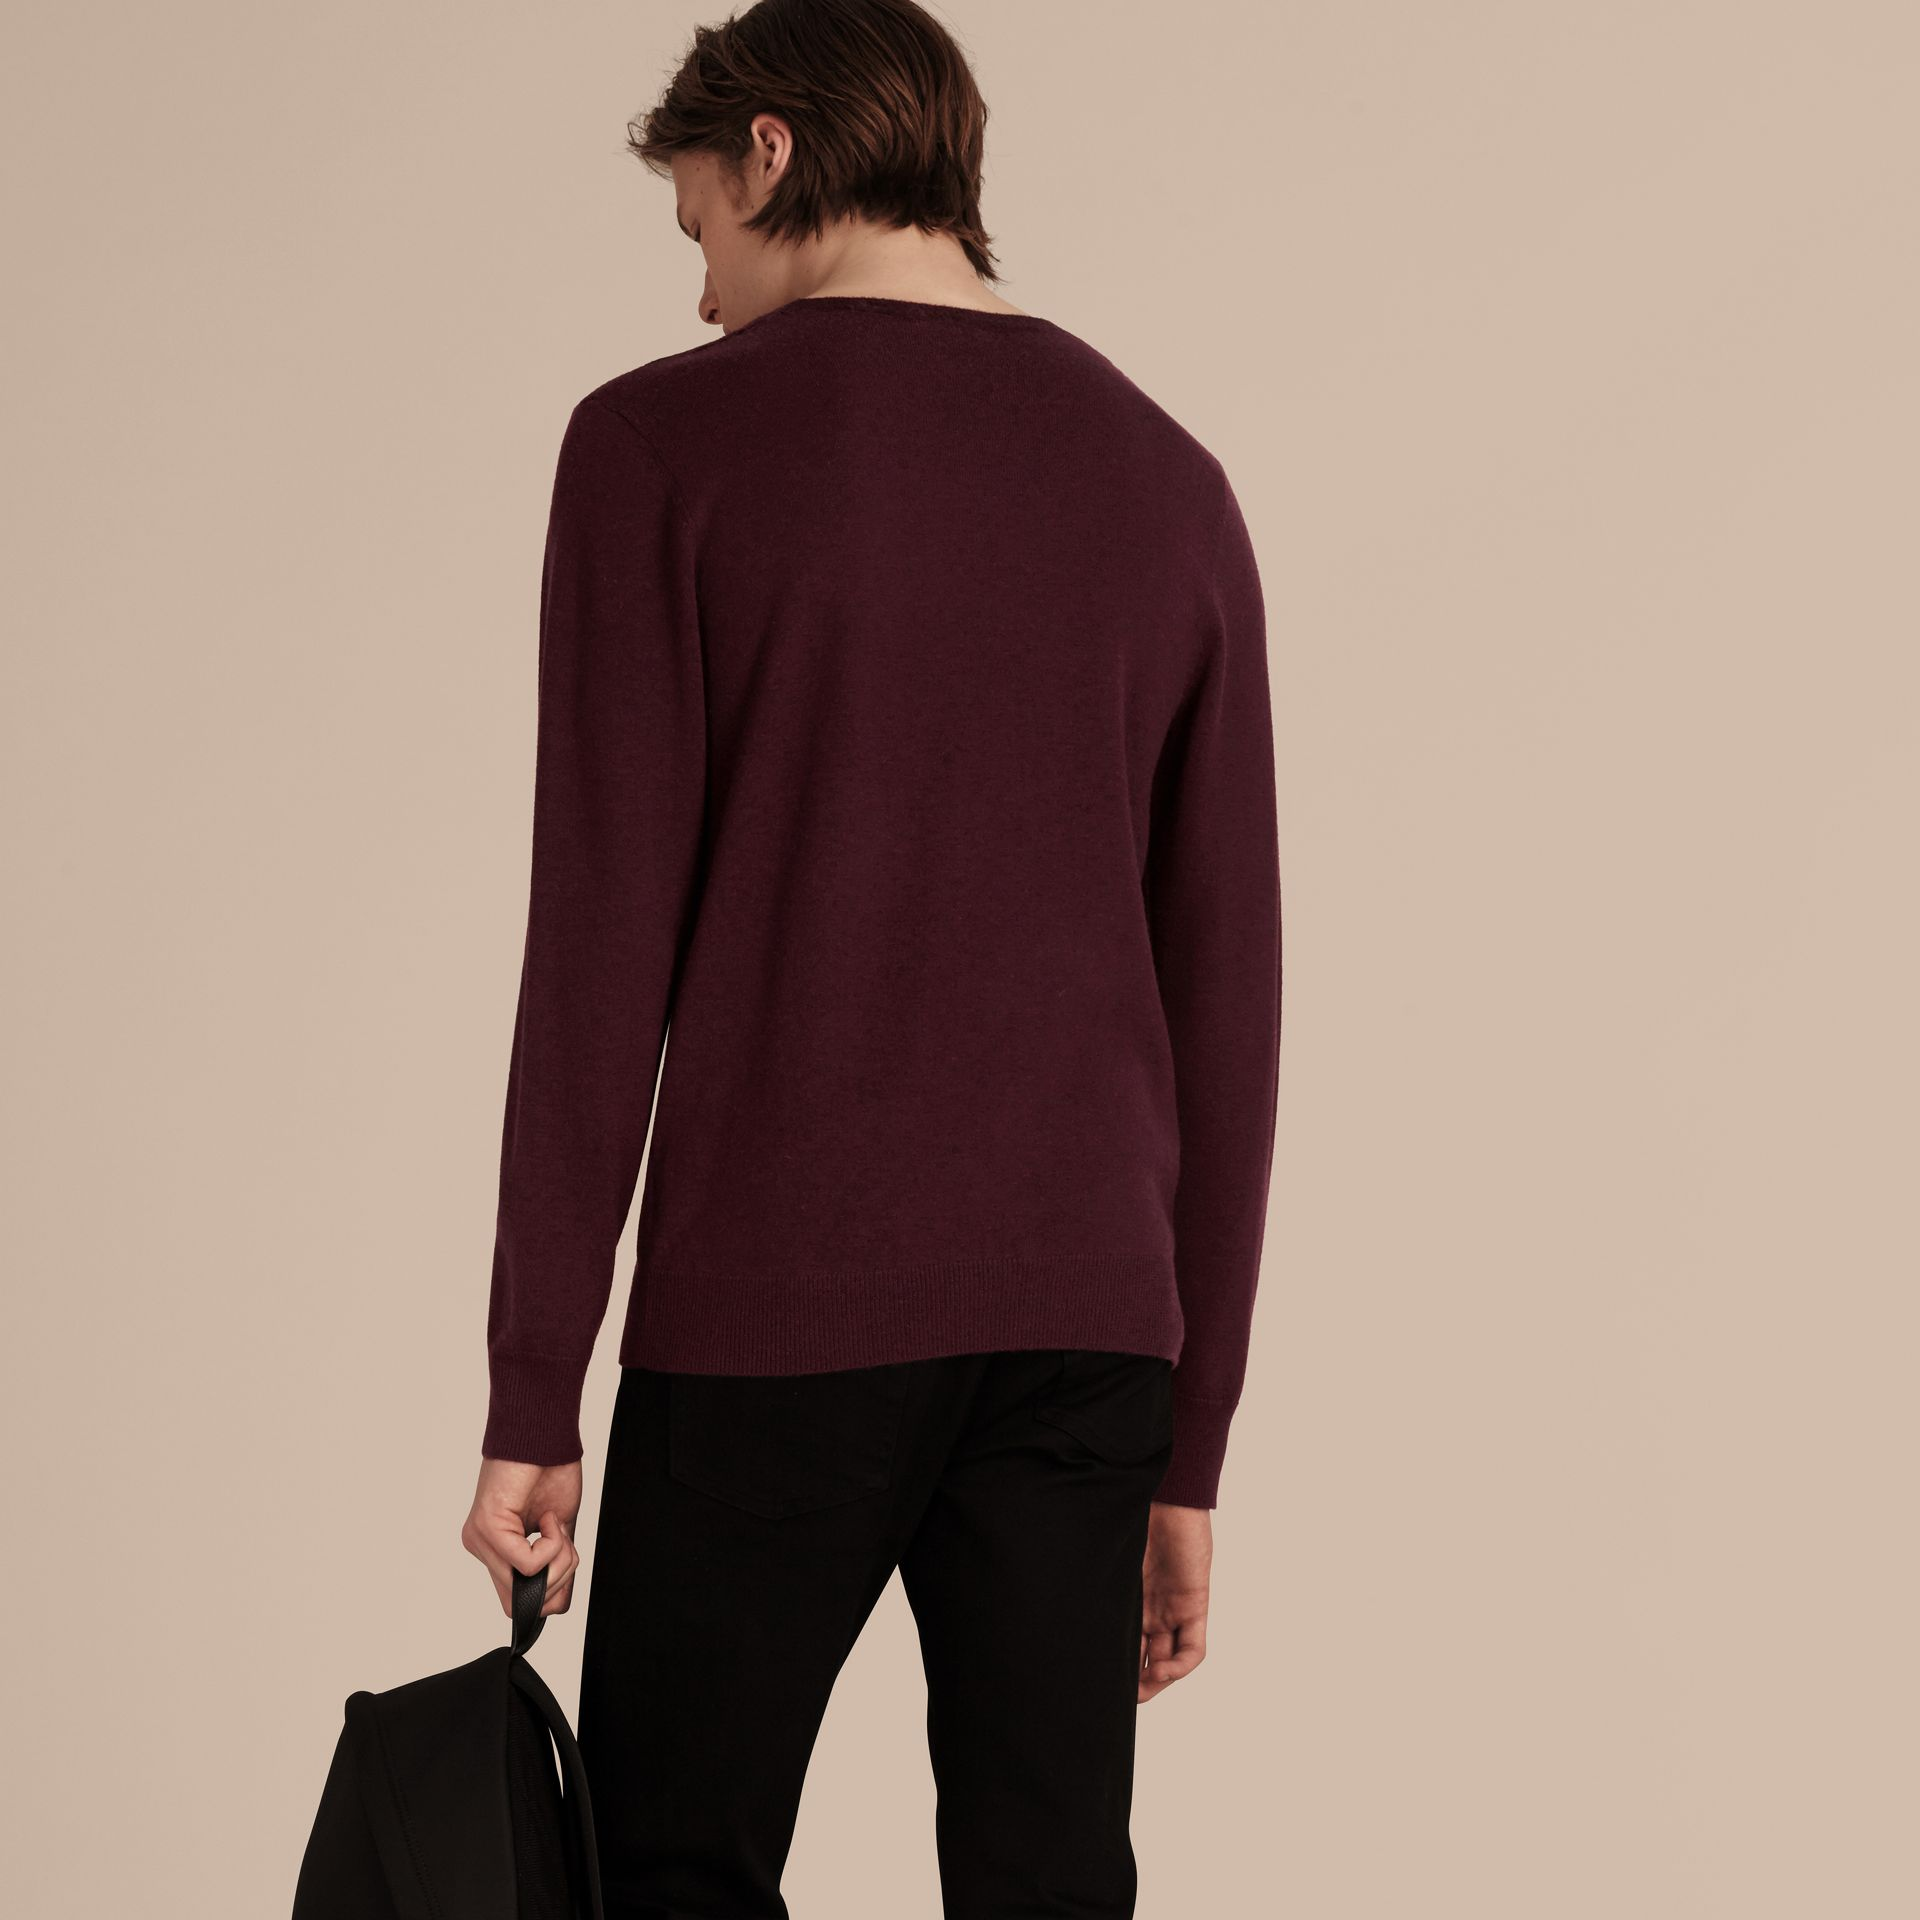 Graphic Check Cashmere Cotton Sweater Burgundy Red - gallery image 3